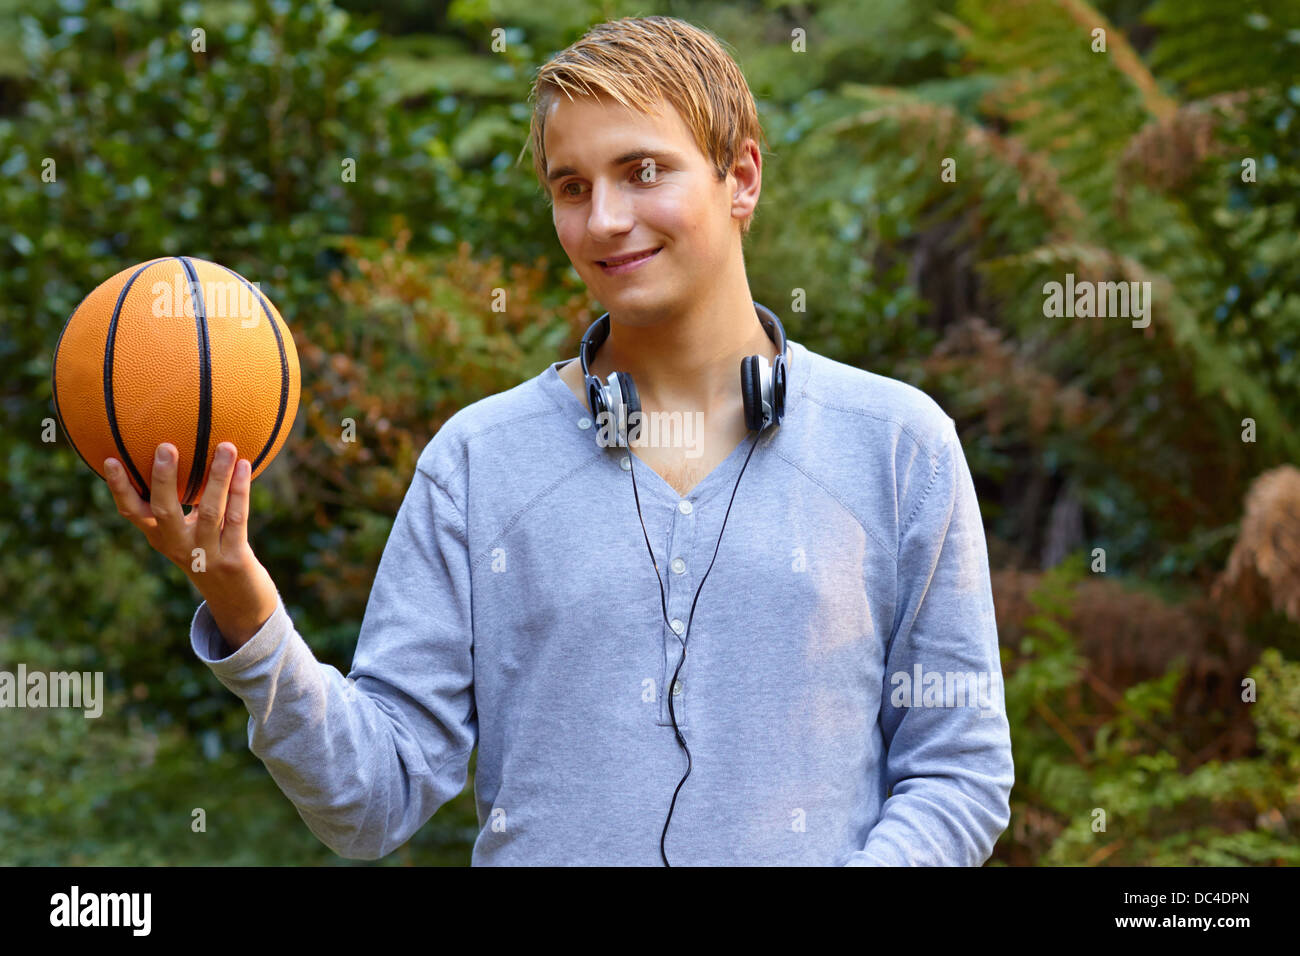 Young man contemplating outdoor basketball sports - Stock Image